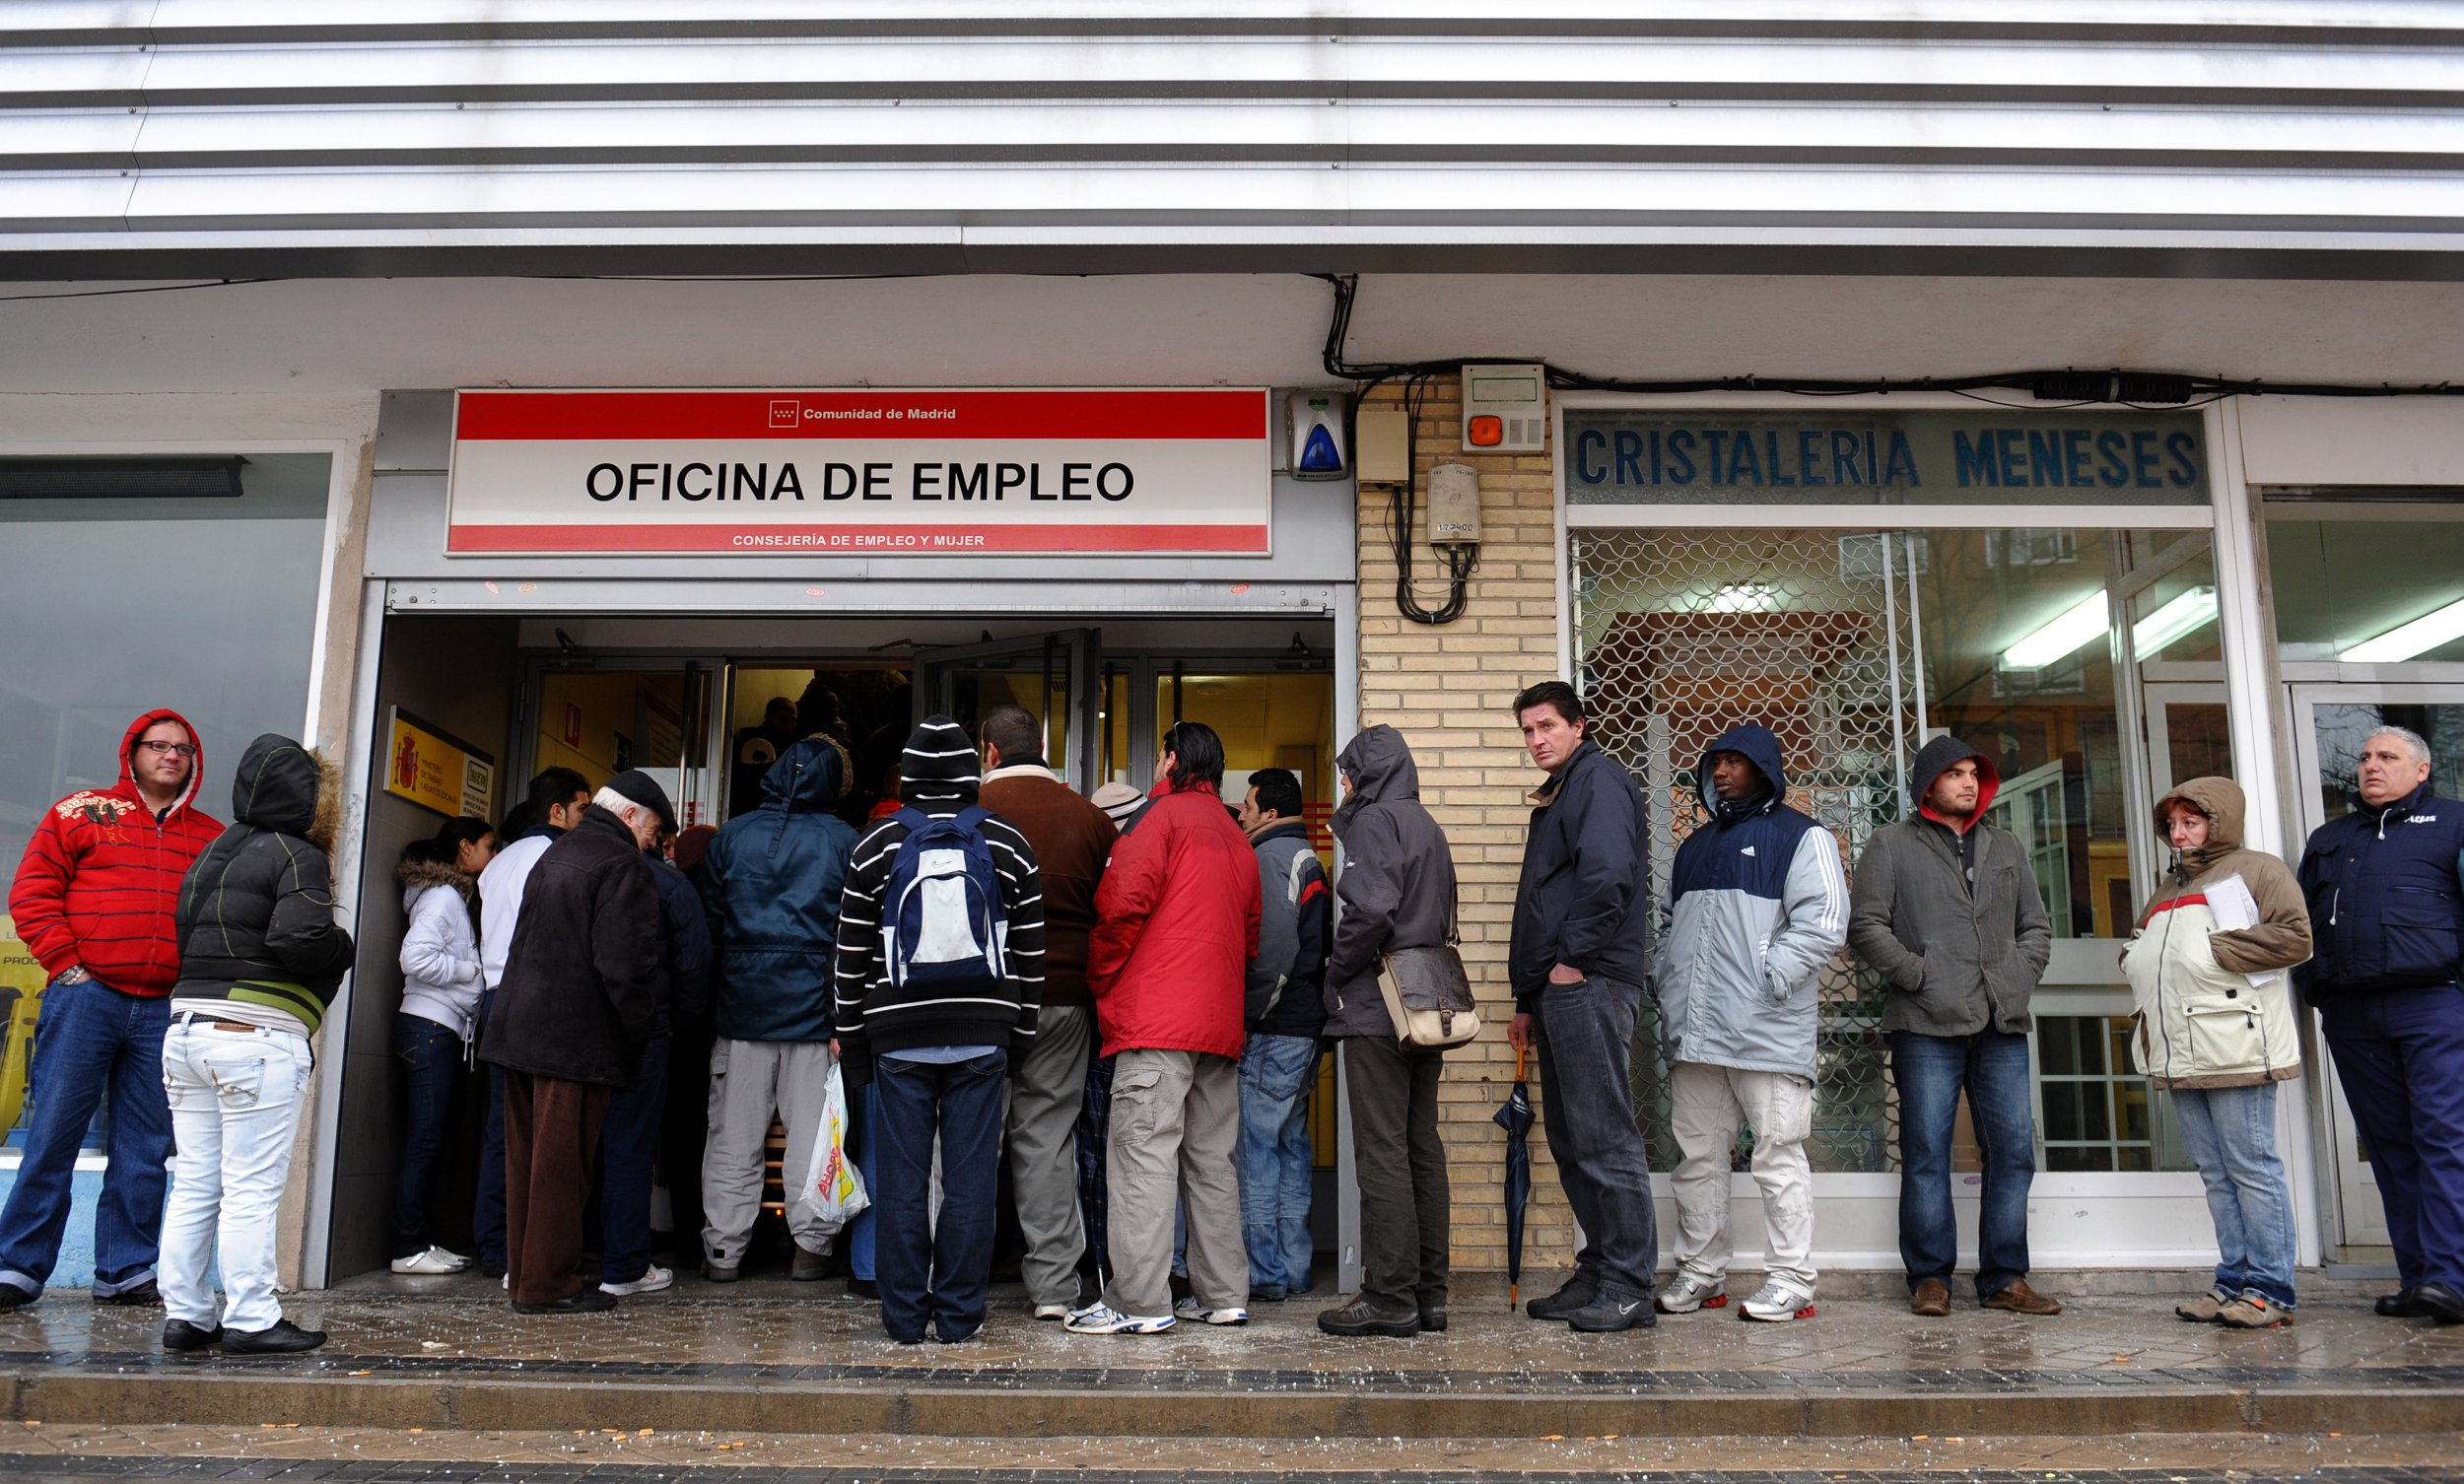 MADRID, SPAIN - FEBRUARY 05: Unemployed wait in line at a government employment office on February 5, 2009 in Madrid, Spain. With companies shedding tens of thousands of jobs due to the fall in of the Spanish property boom, the number of people out of work in Spain has risen to a 12 year high in January with more than 3.3 million out of work, 13% of the Spanish population. (Photo by Jasper Juinen/Getty Images)